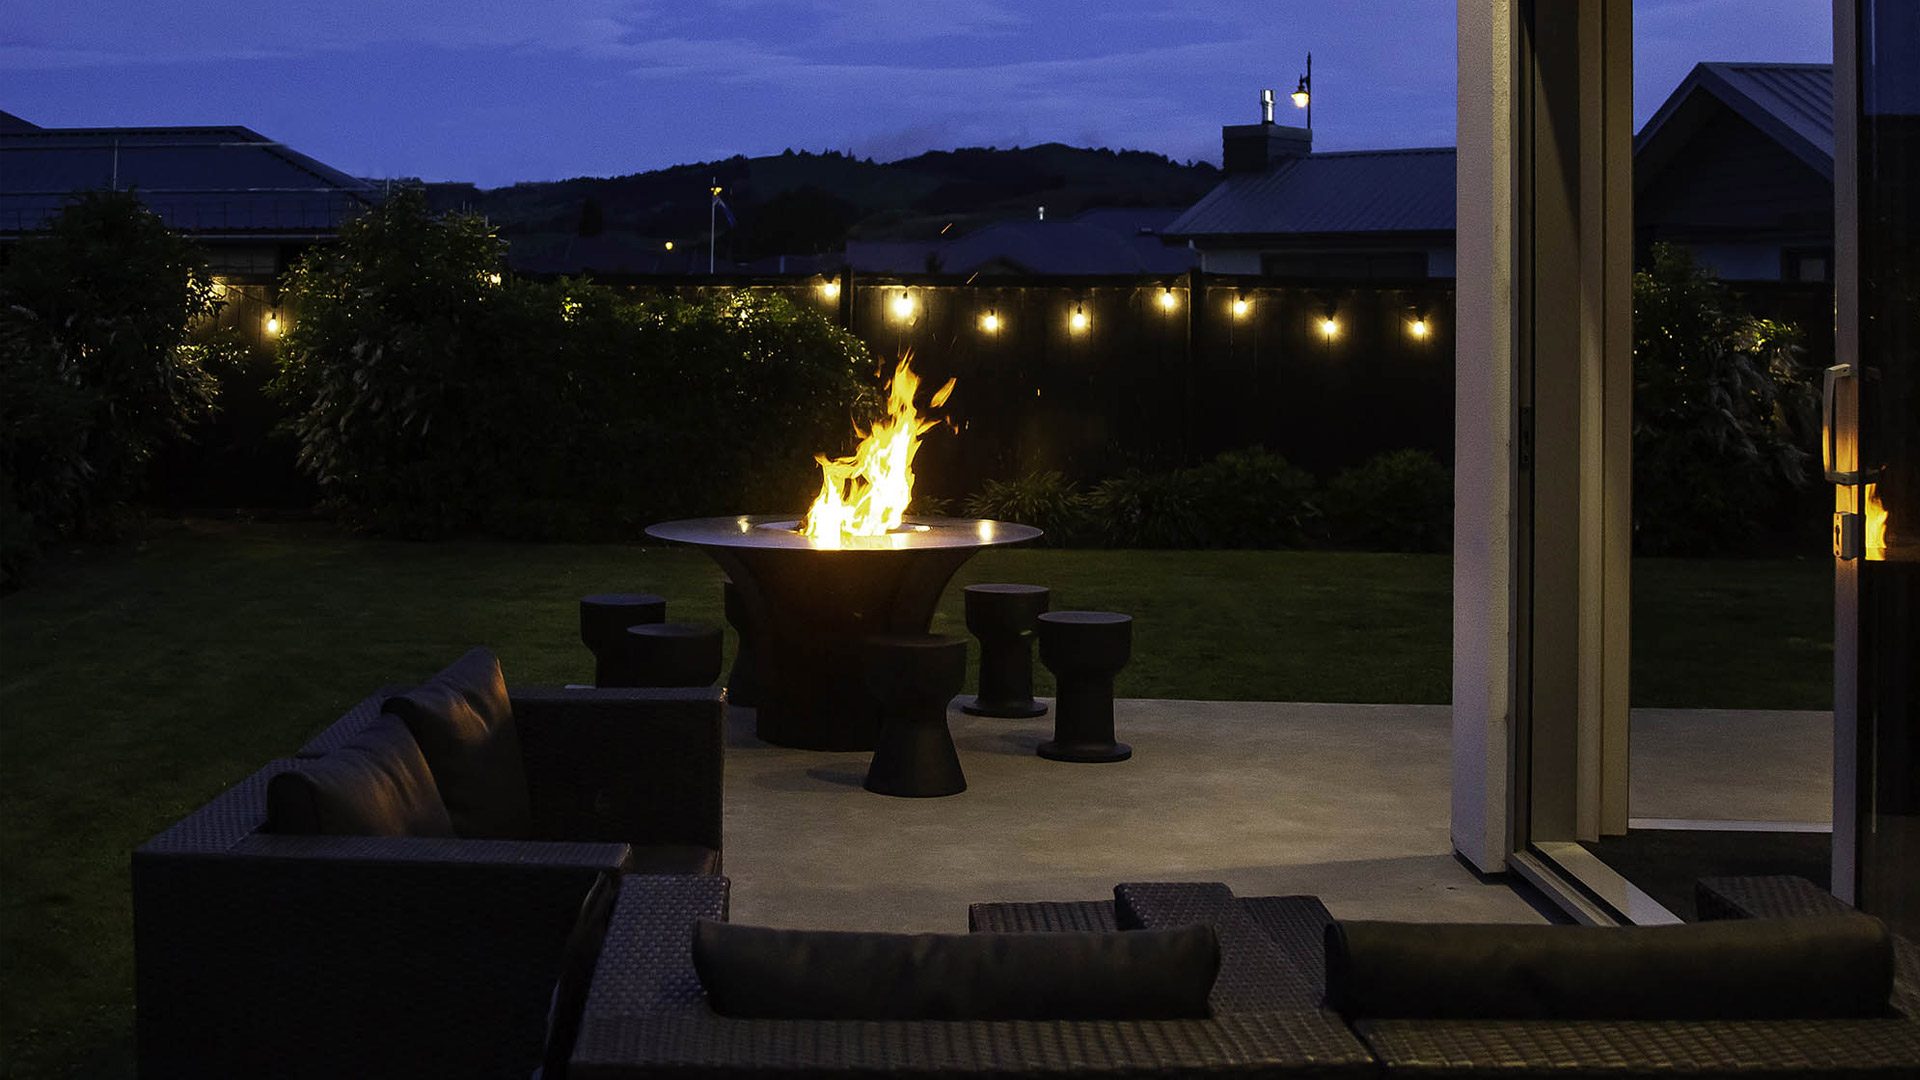 Bringing the campfire to you - at home with the Escea EP1350 Fire Table.